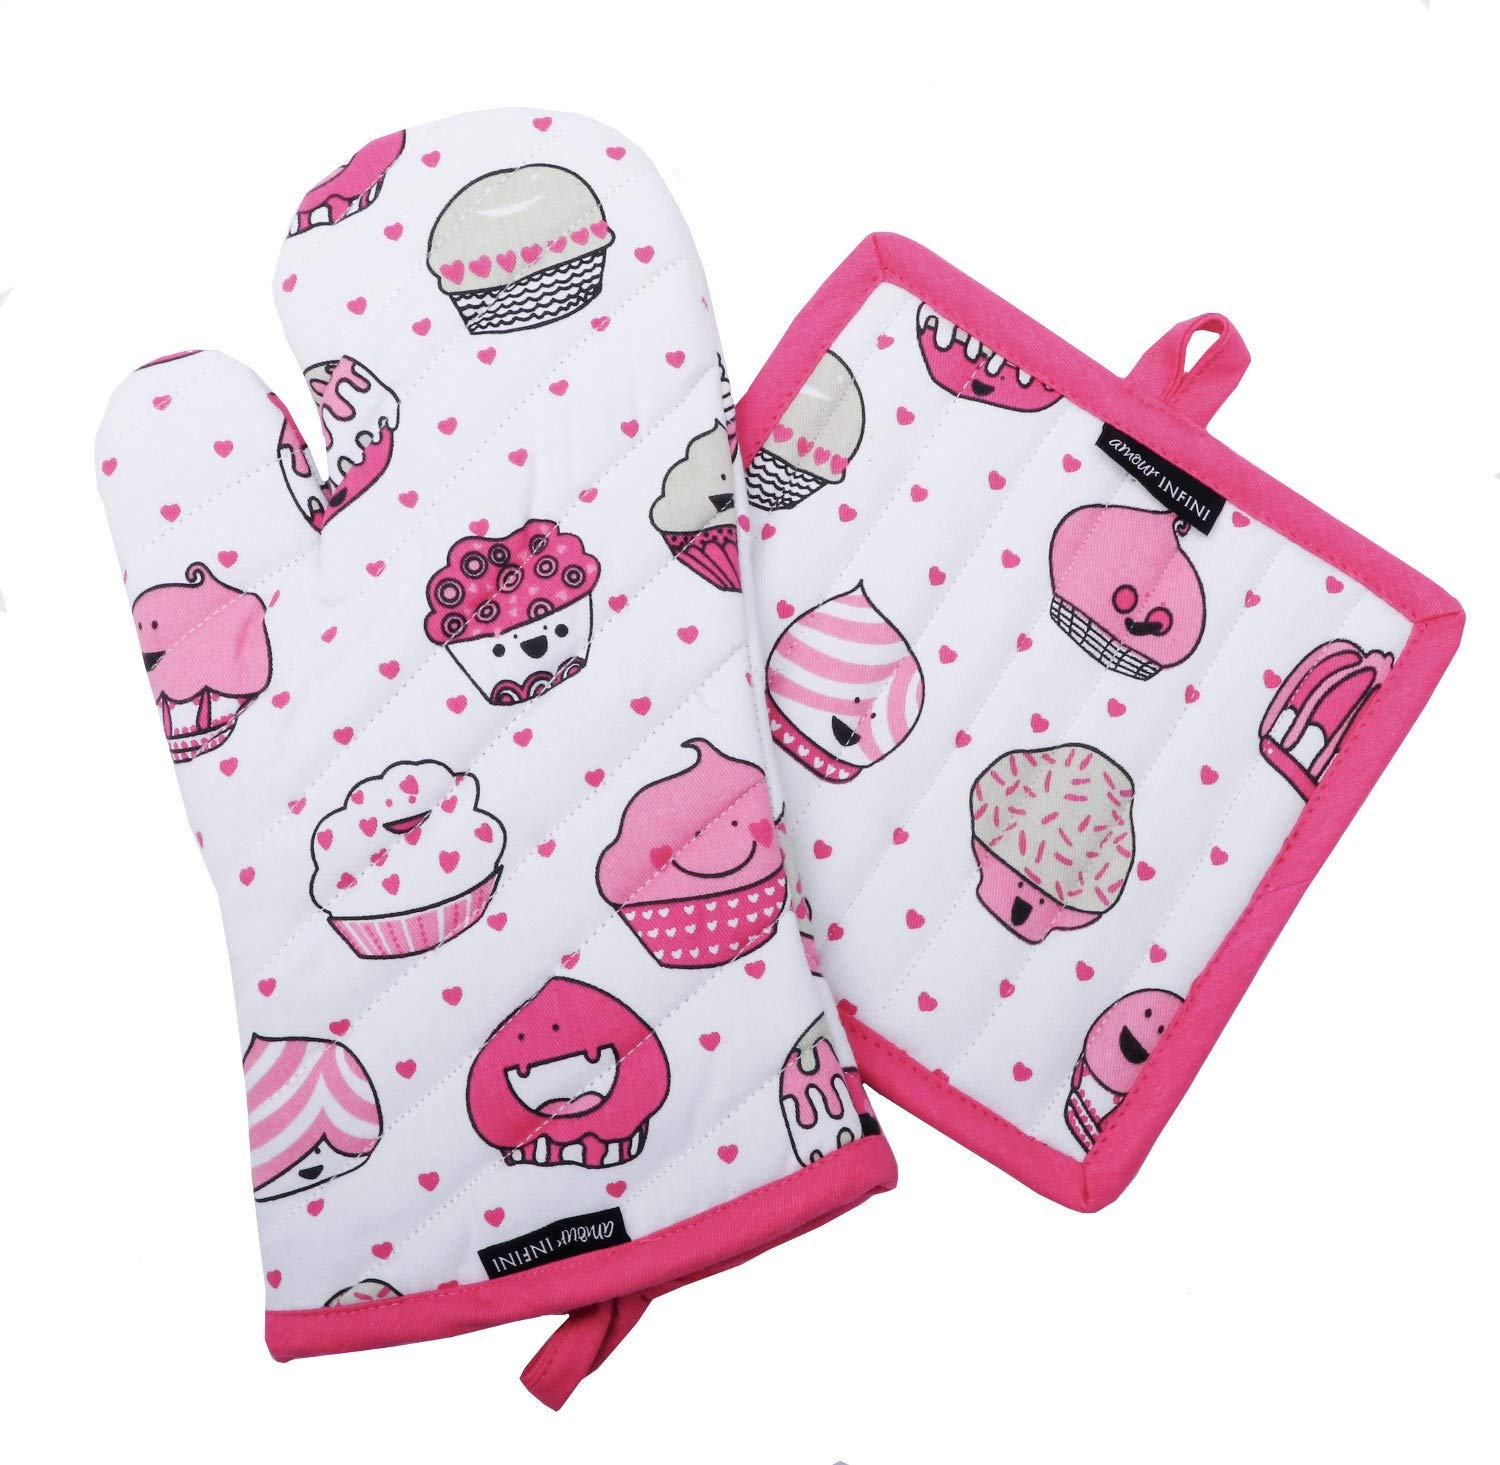 CASA DECORS Pot Holders and Oven Mitts, Valentine Cup Cakes Design, Heat Resistant, Made of 100% Cotton, Eco-Friendly & Safe, Set of 1 Oven Mitt and 1 Pot Holder, Pot Holders and Oven Mitts Sets